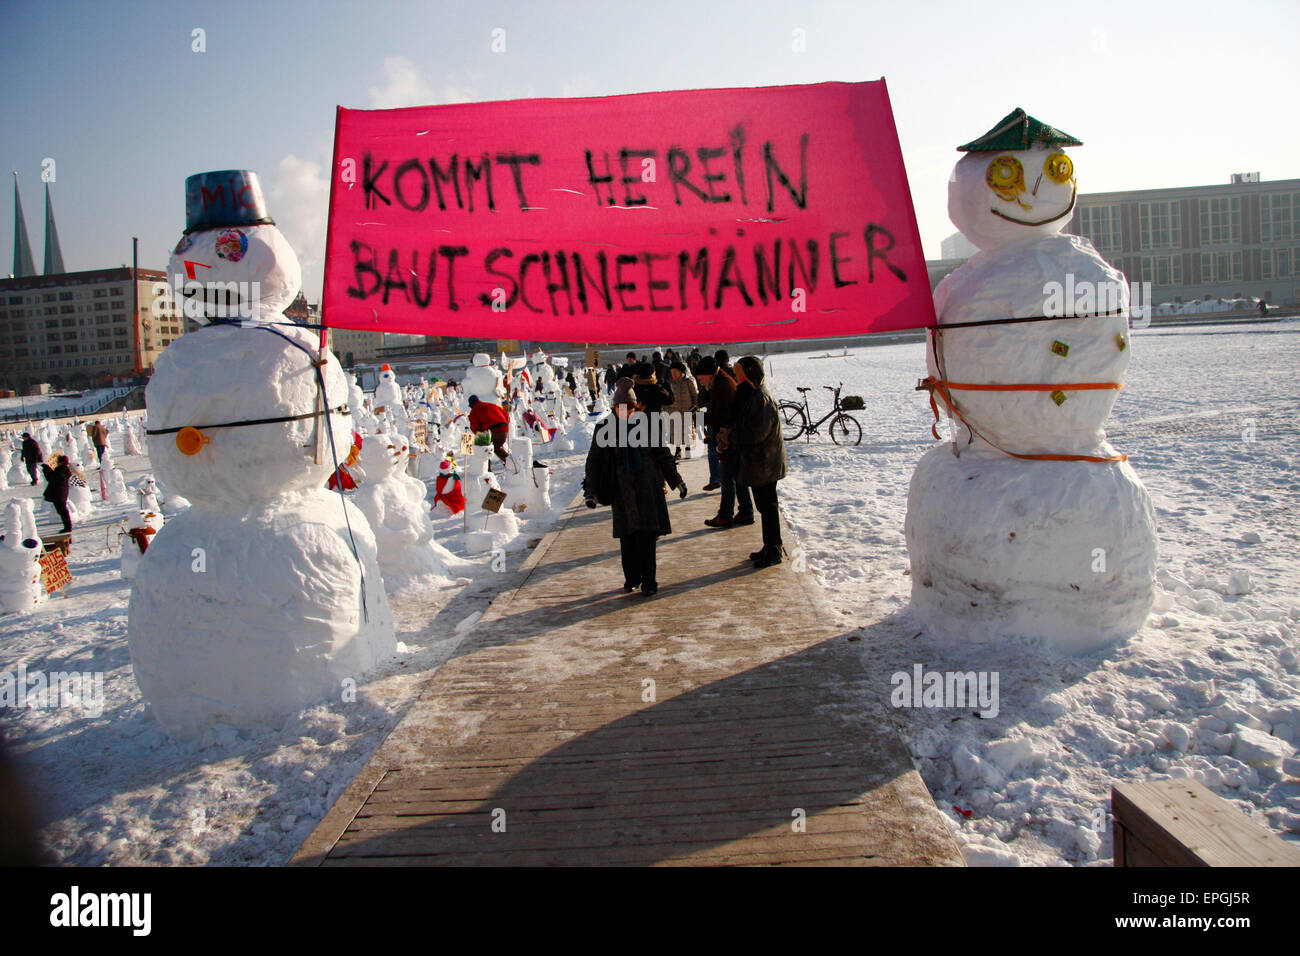 FEBRUARY 8, 2010 - BERLIN: a 'demonstration' of snowmen against policies that do not prevent global warming, - Stock Image